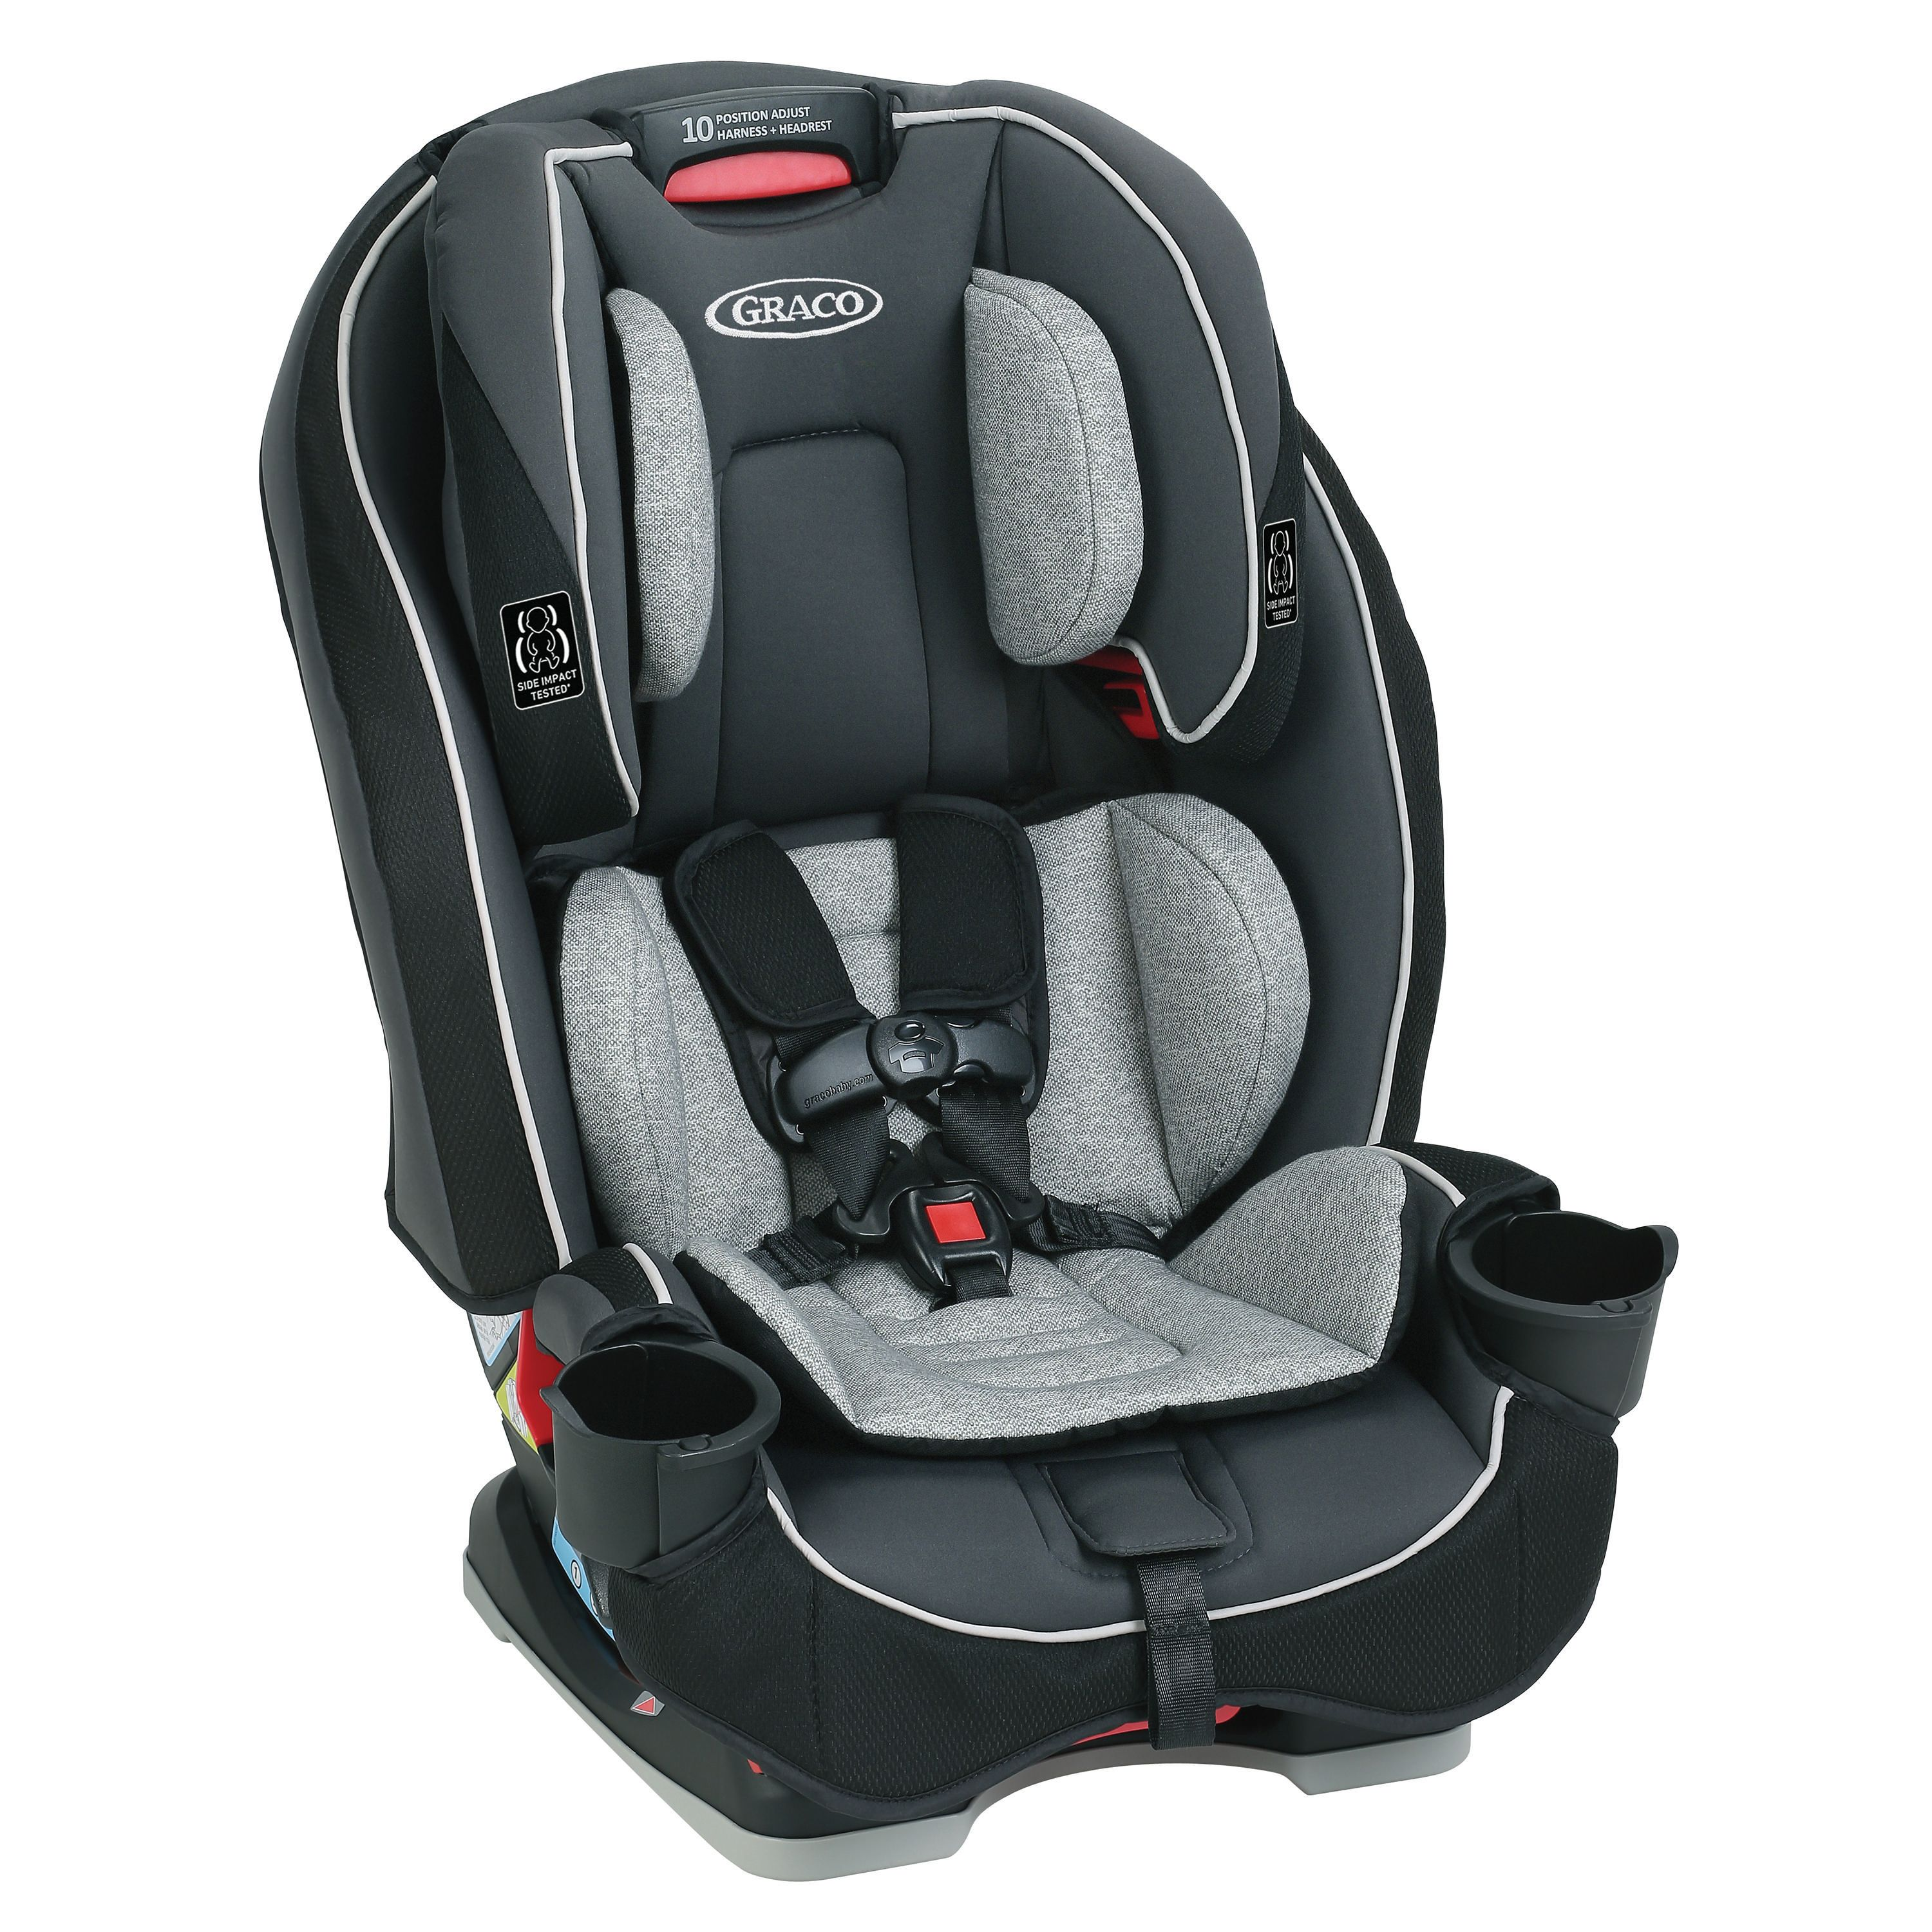 https://truimg.toysrus.com/product/images/graco-slimfit-all-in-one-convertible-car-seat-darcie--4A42B4C1.zoom.jpg